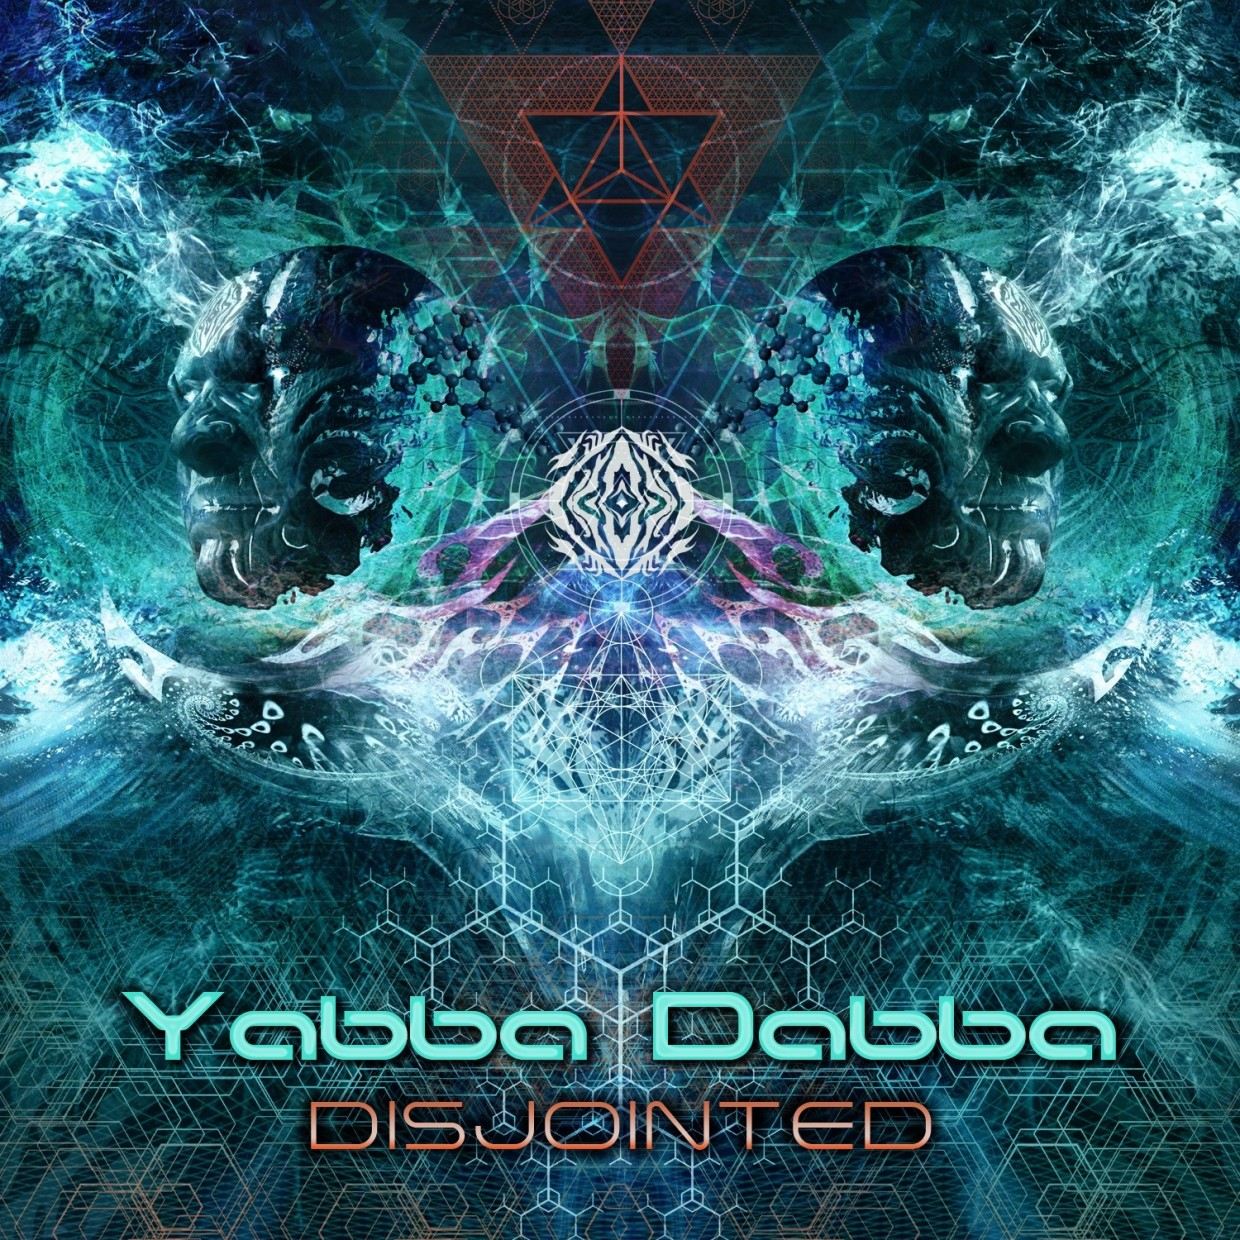 Sangoma Records - YABBA DABBA - Disjointed